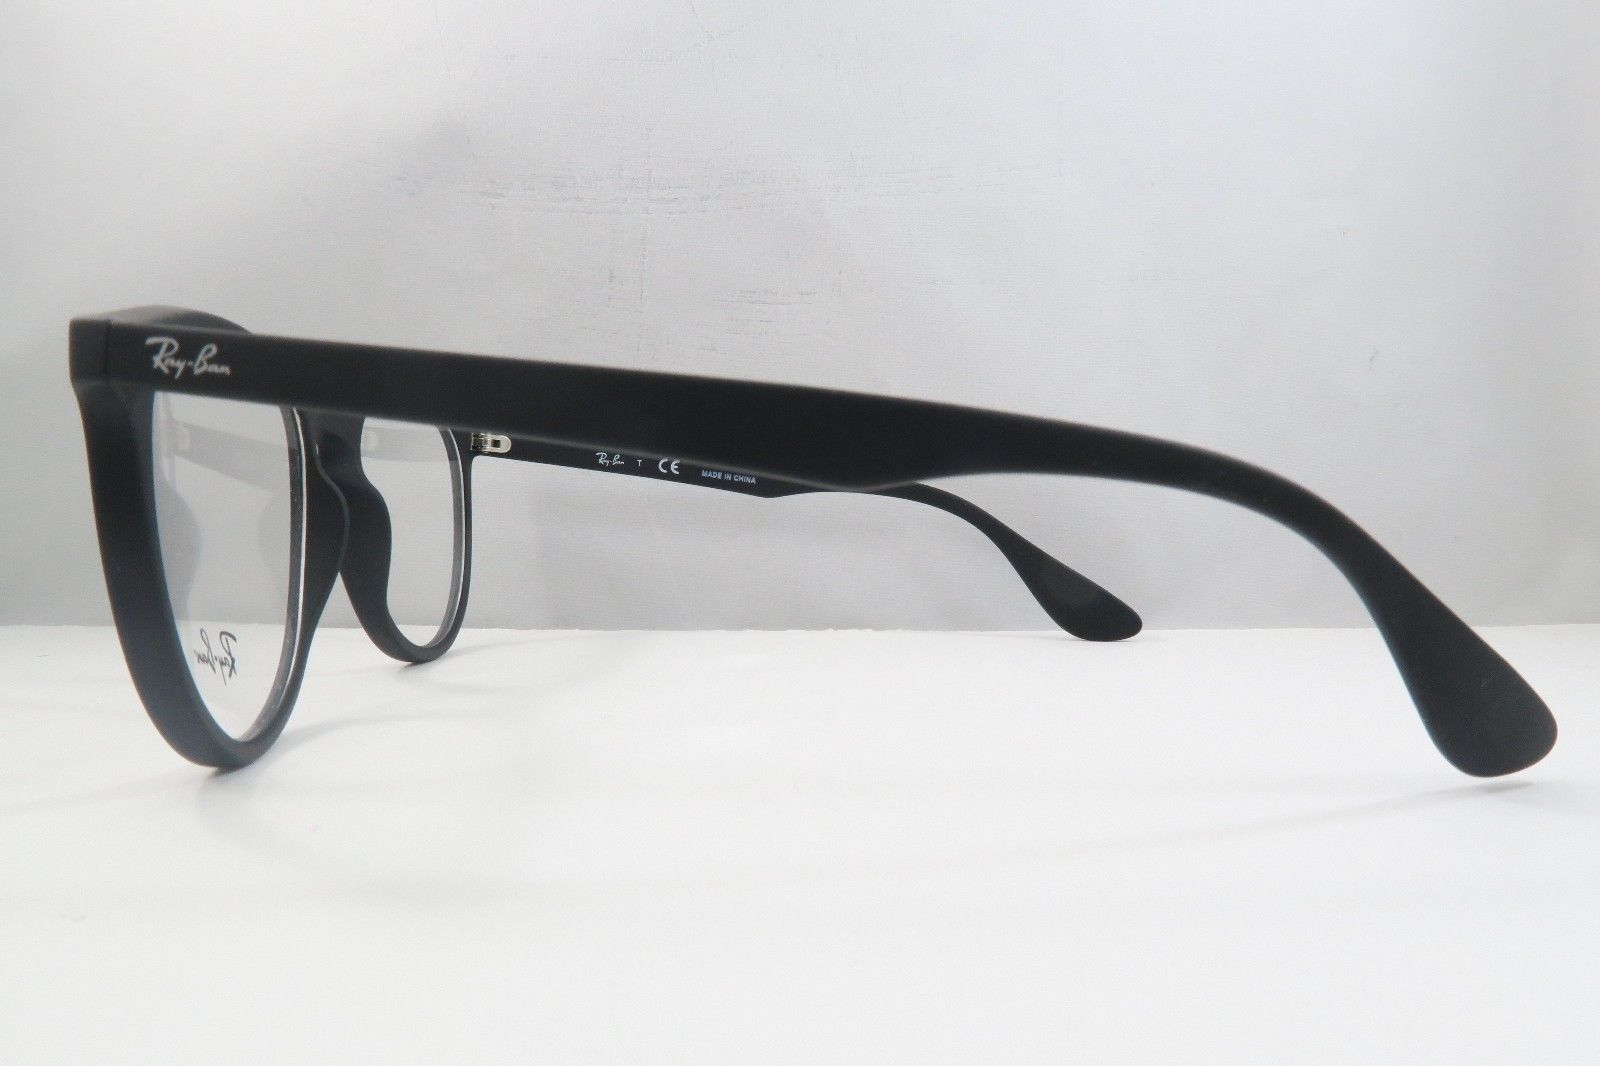 444305c9ae8 Ray-Ban RB 7046 5364 Matte Rubber Black New Authentic Eyeglasses 51mm - 43